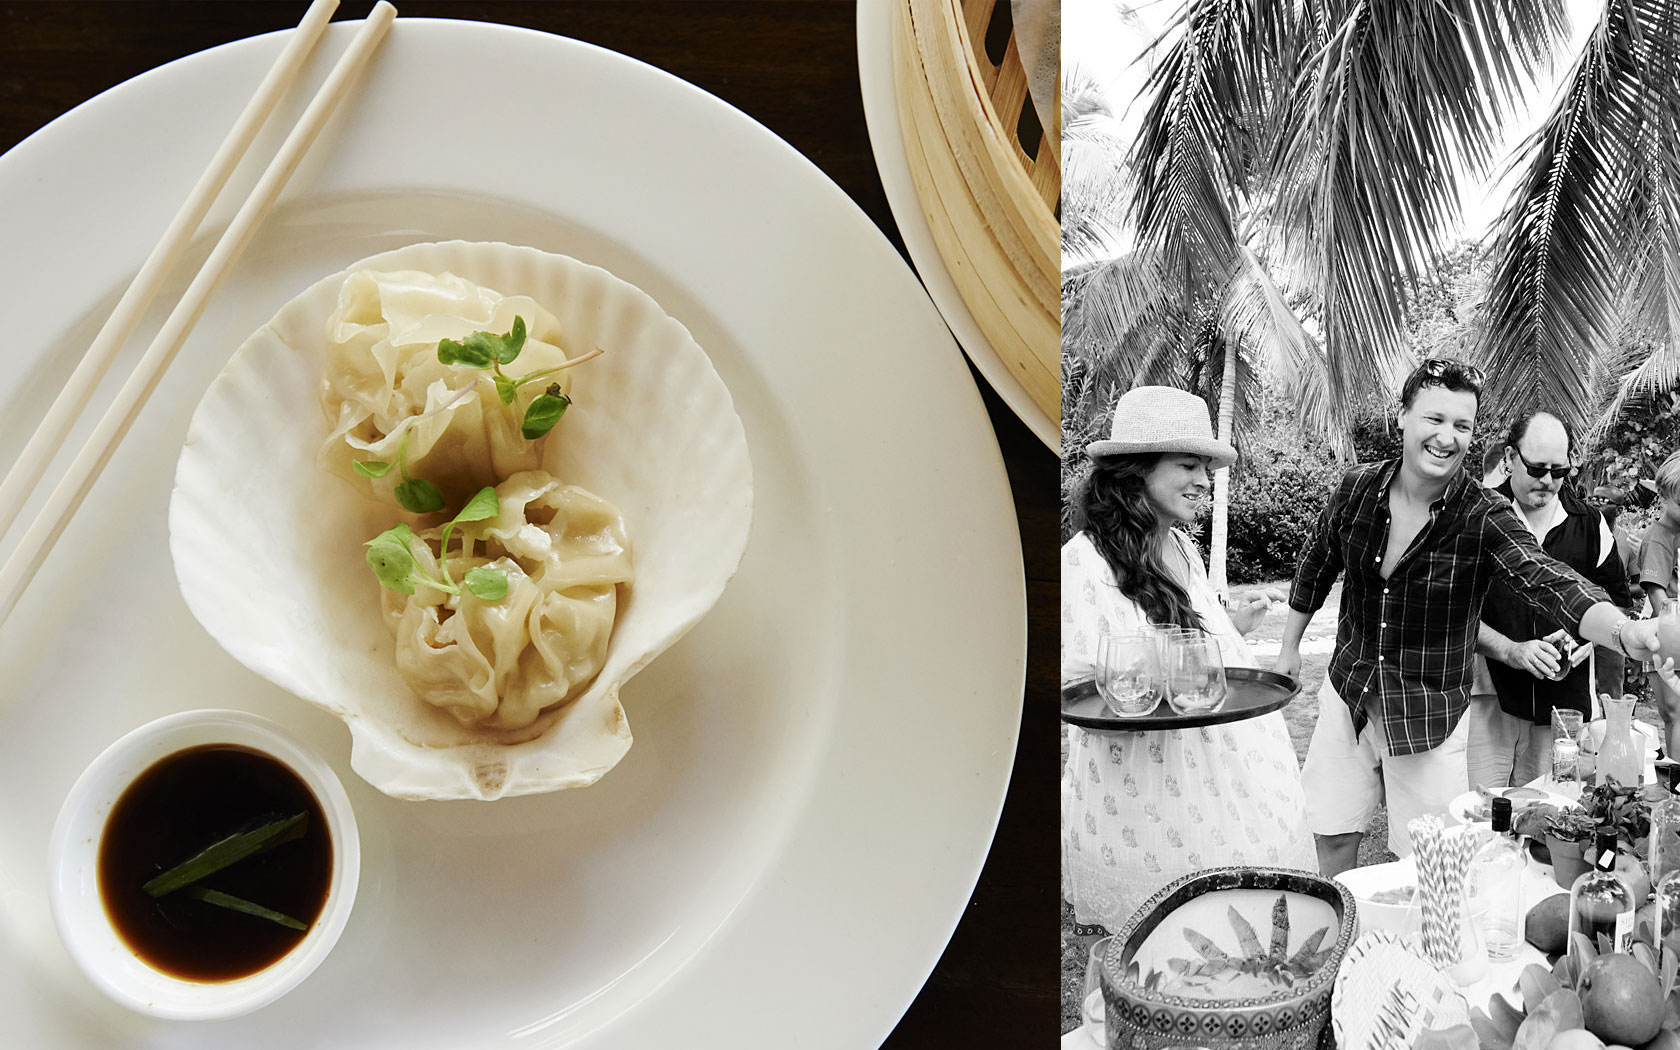 plate of dumplings and a black and white photo of people getting food outside